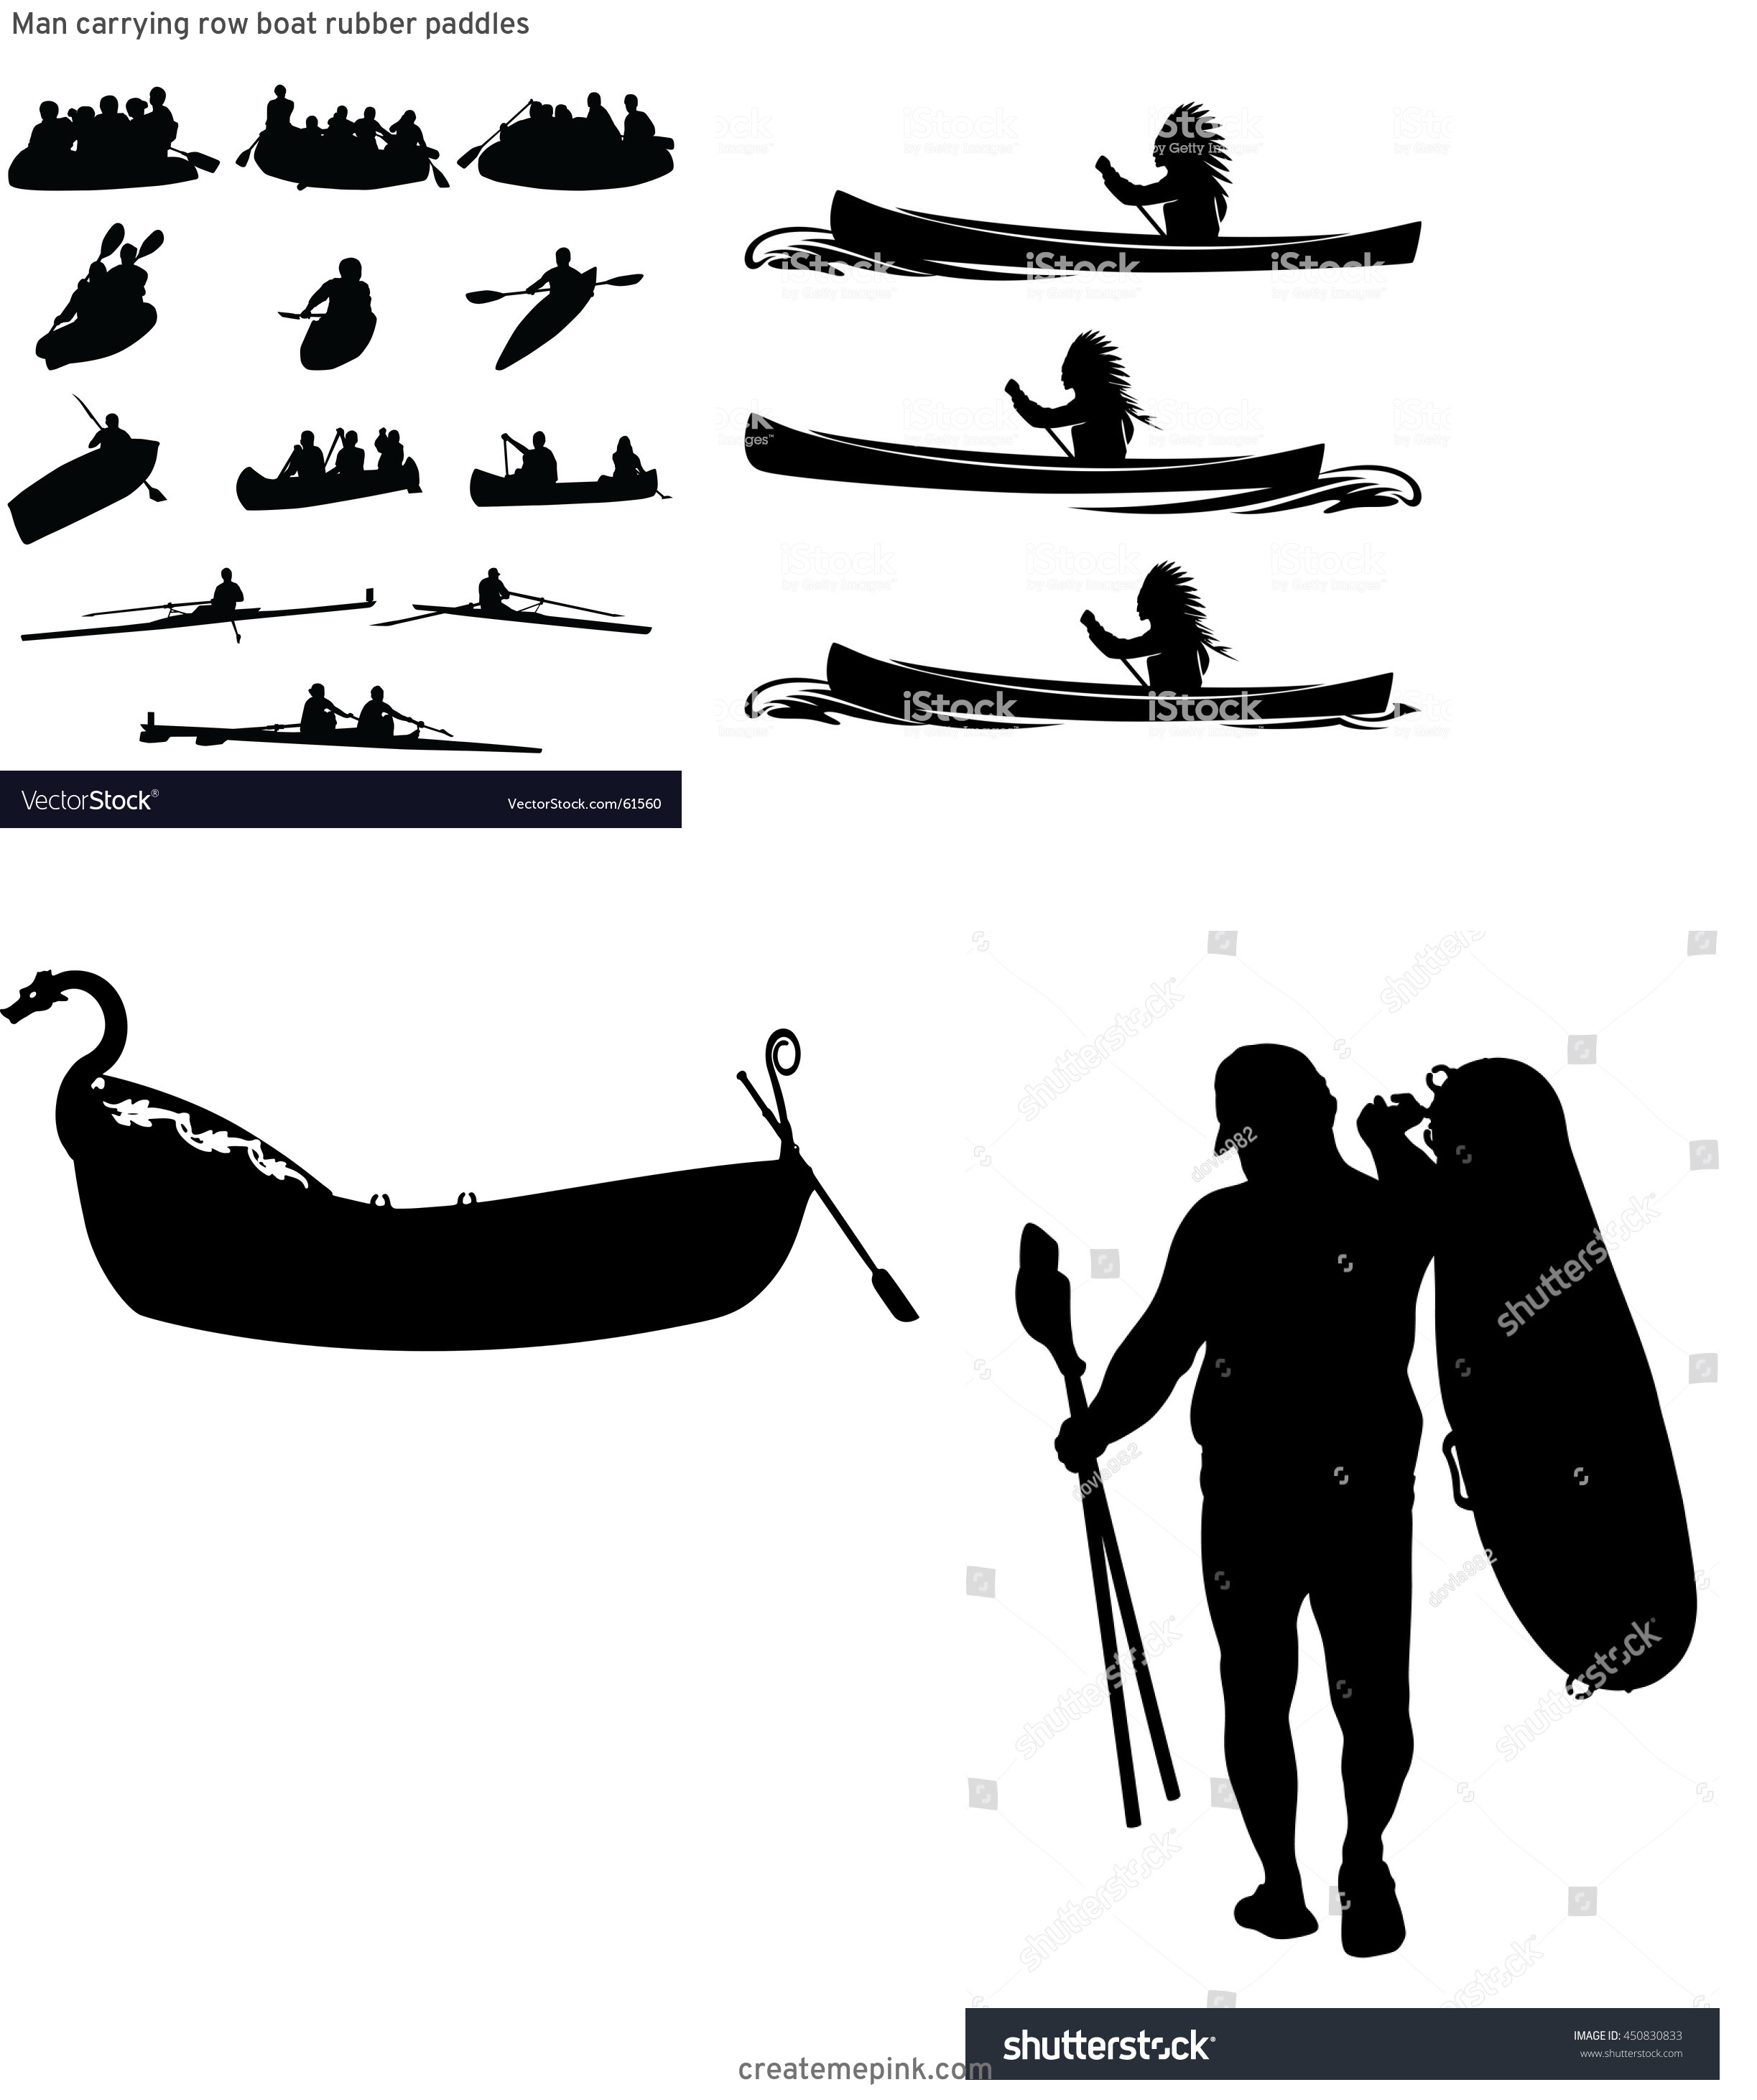 Row Boat Vector Sillohettes: Man Carrying Row Boat Rubber Paddles